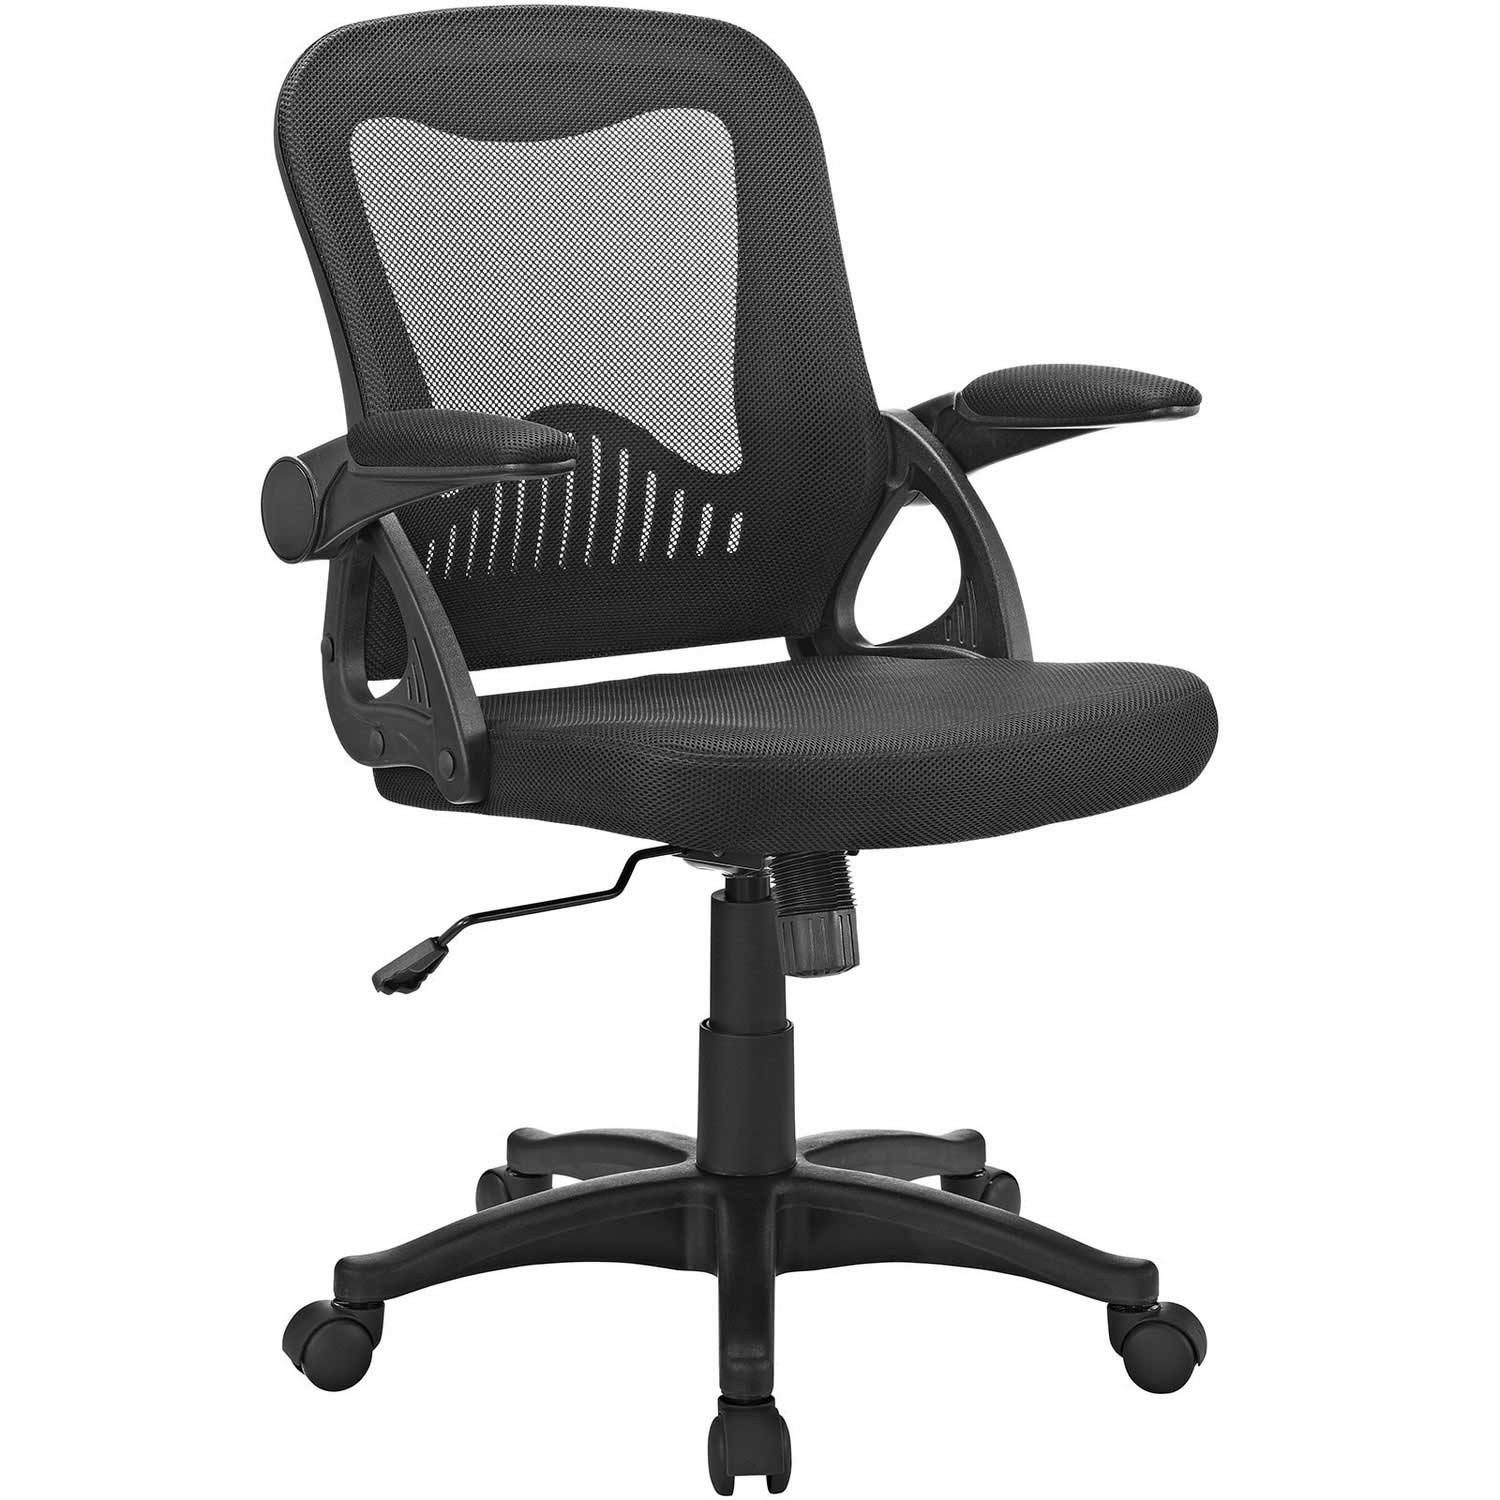 Modway Advance Office Chair - Black